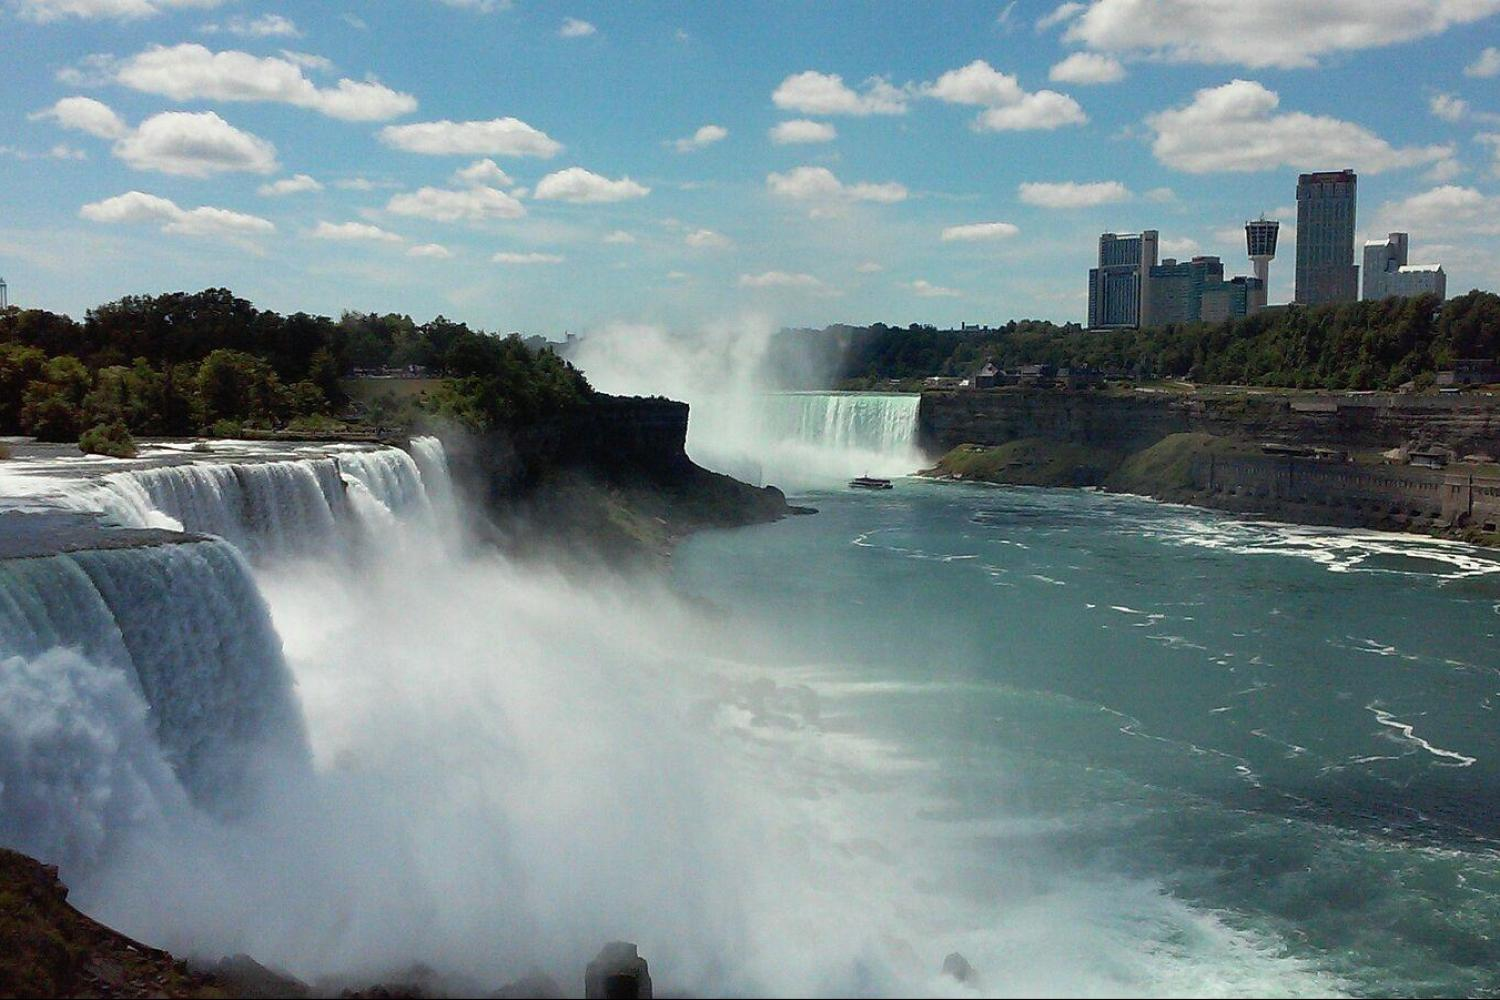 Experience all the beauty of nature's majestic rainbow factory, Niagara Falls